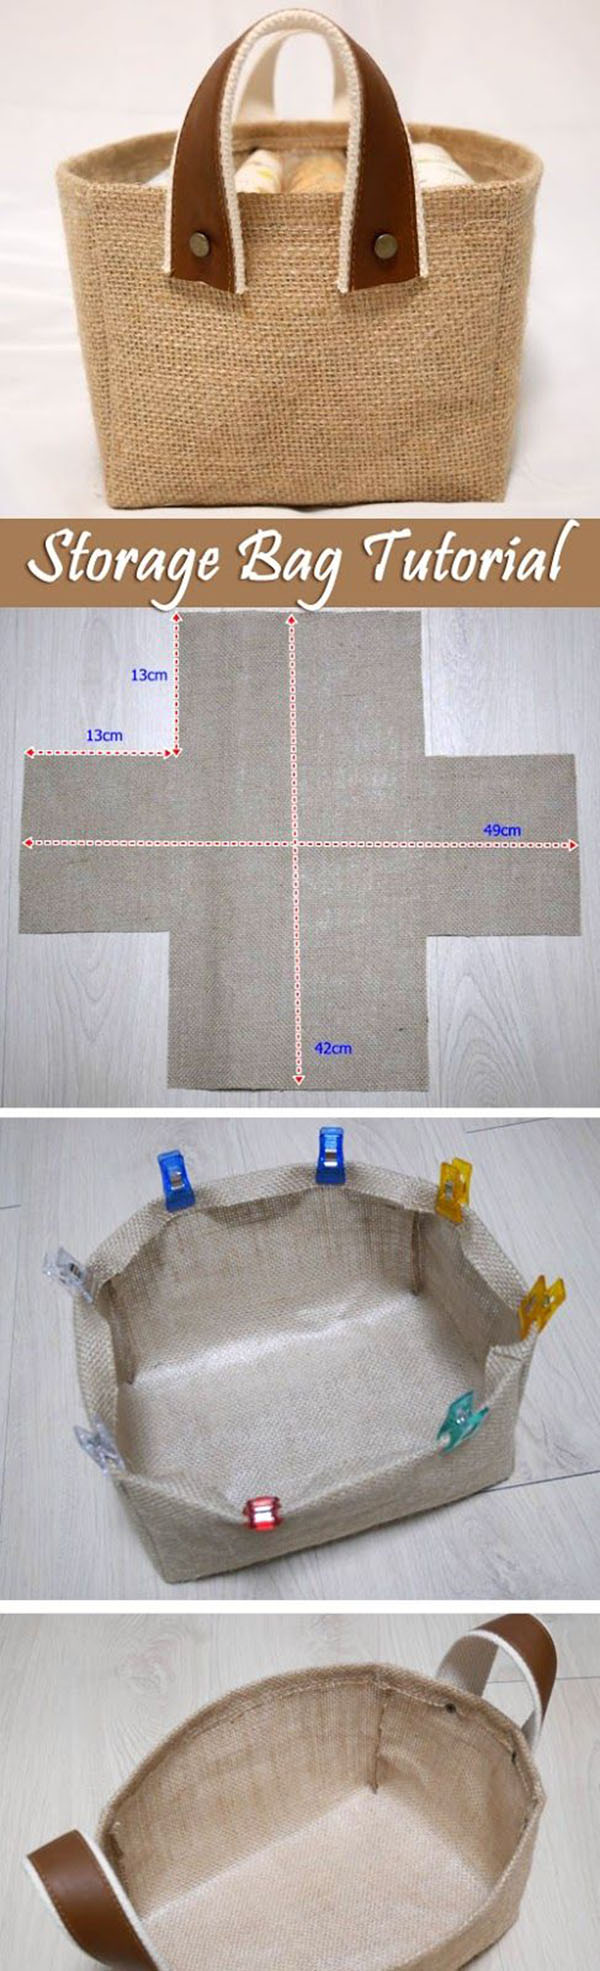 Burlap bathroom ideas - Beach And Country Diy Burlap Tote